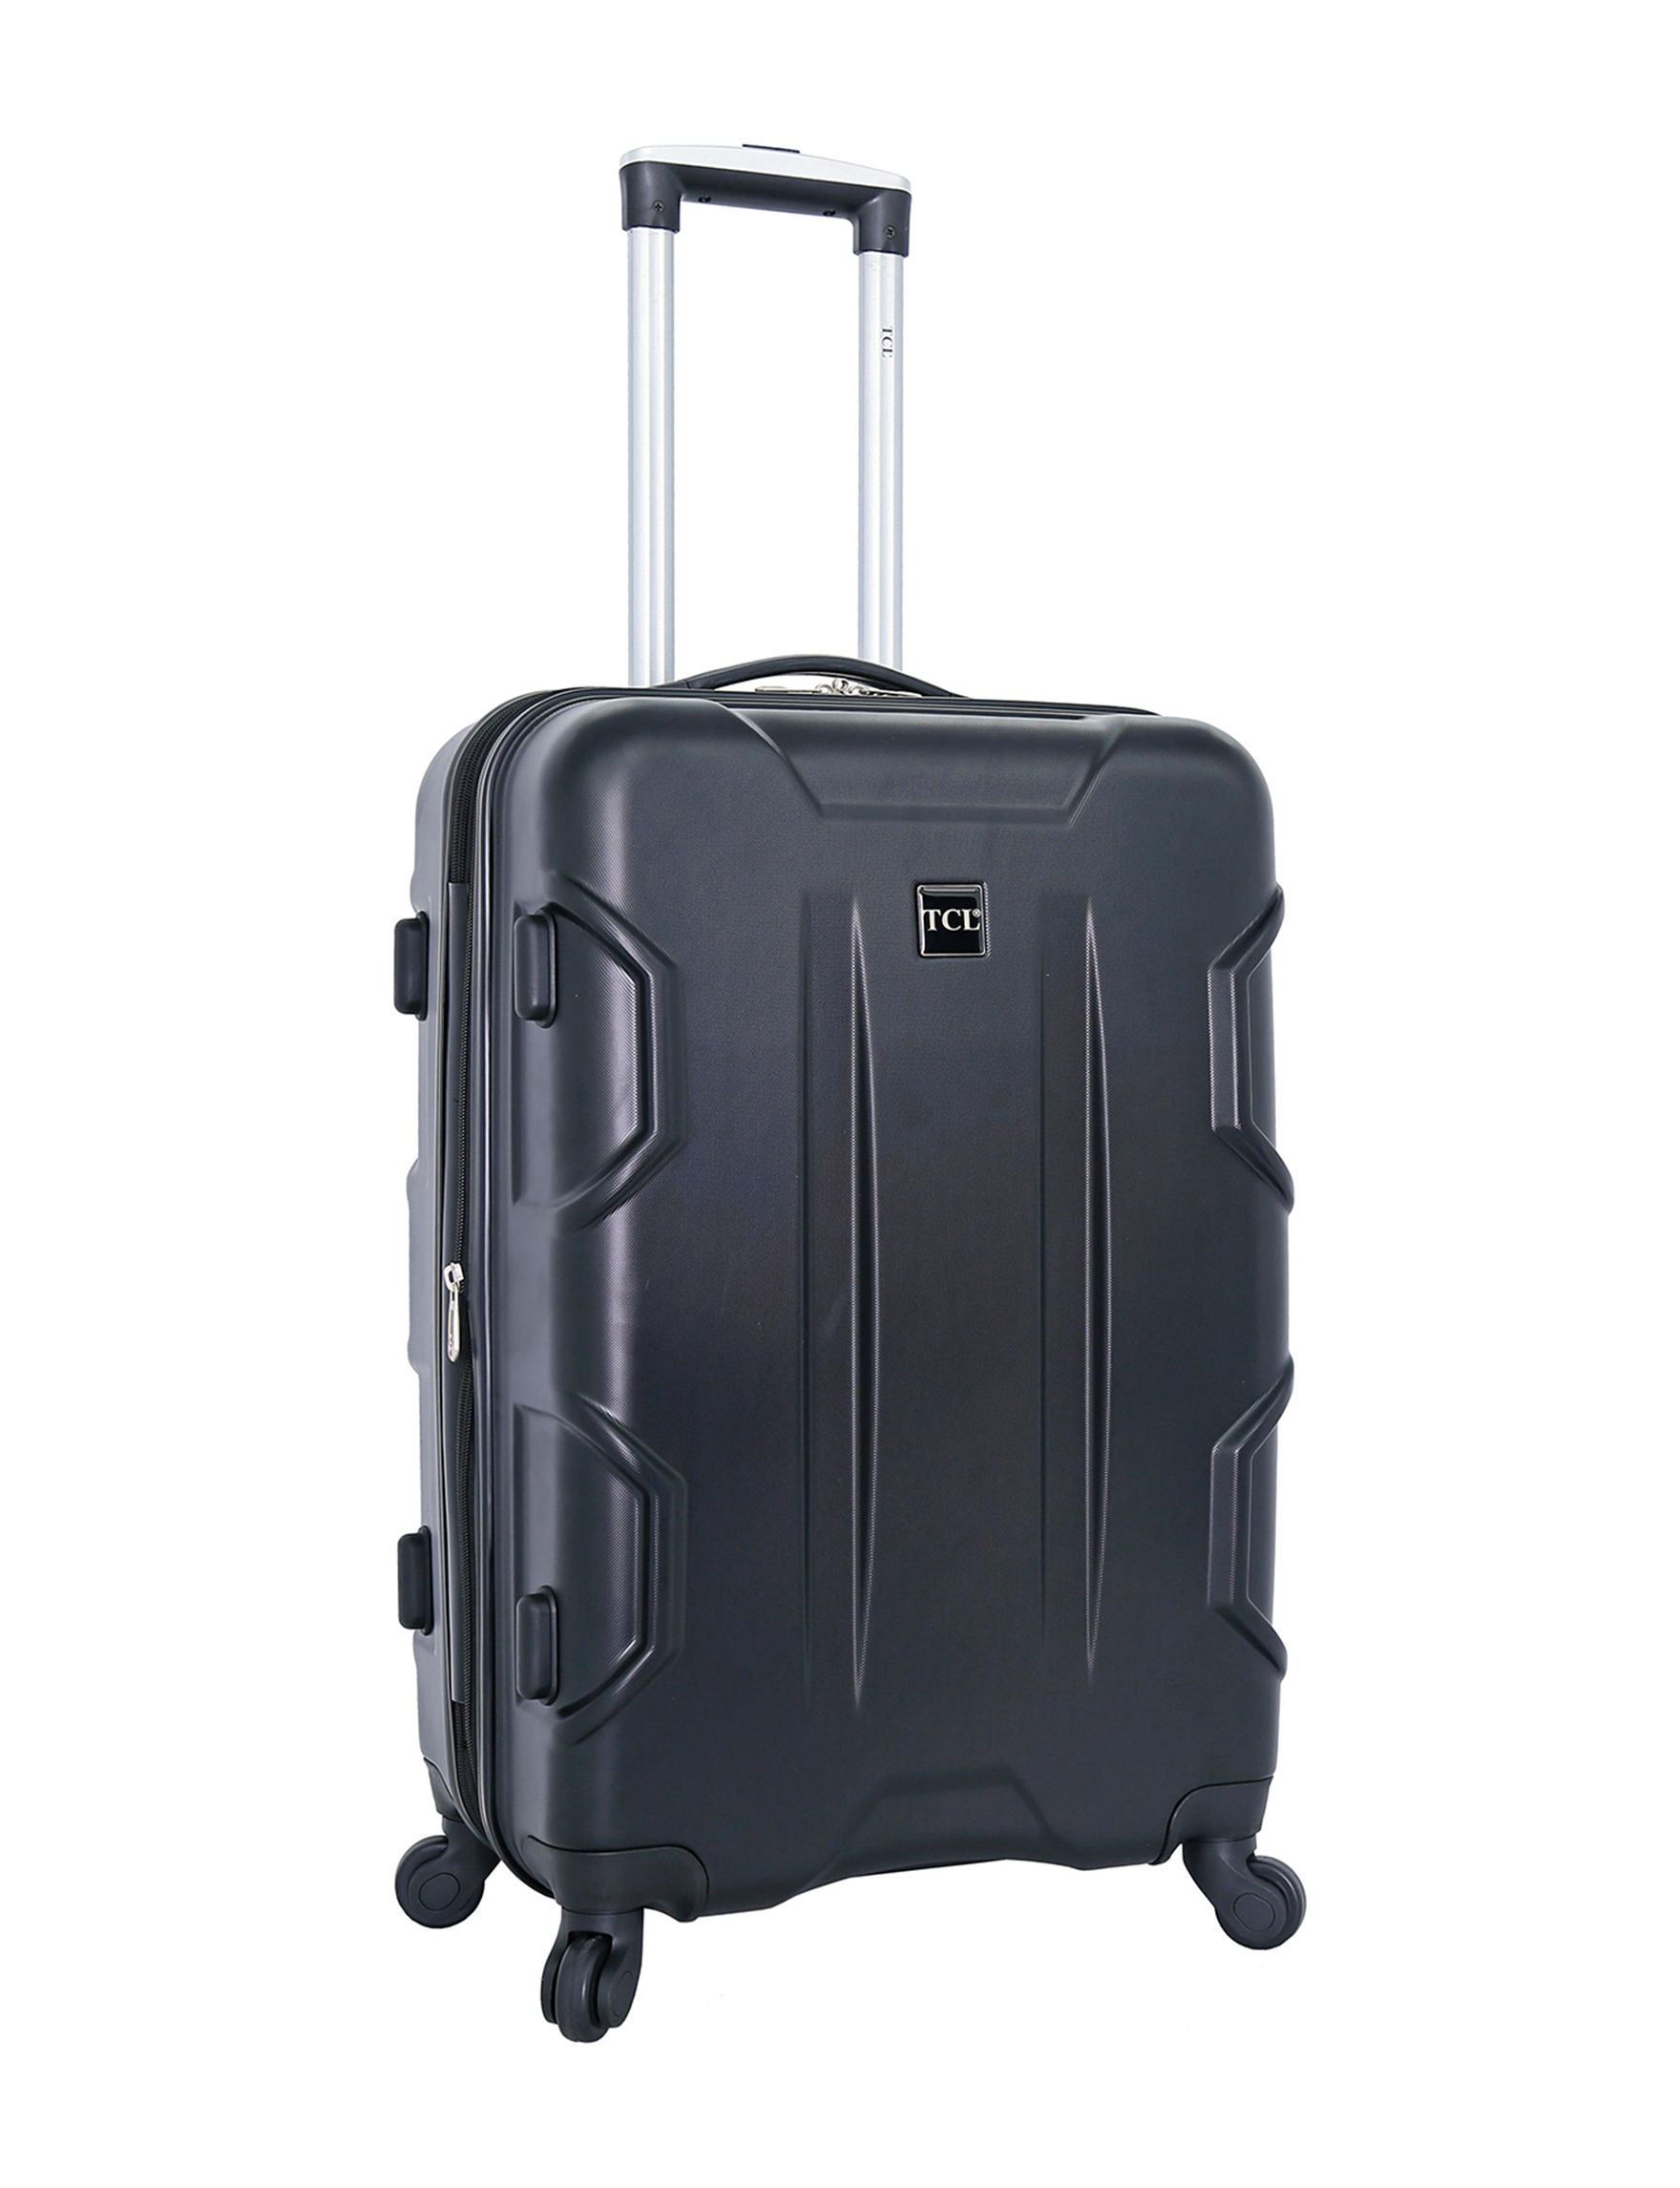 Travelers Club Luggage Expandable Hardside Spinner Luggage in Several Sizes (Black)